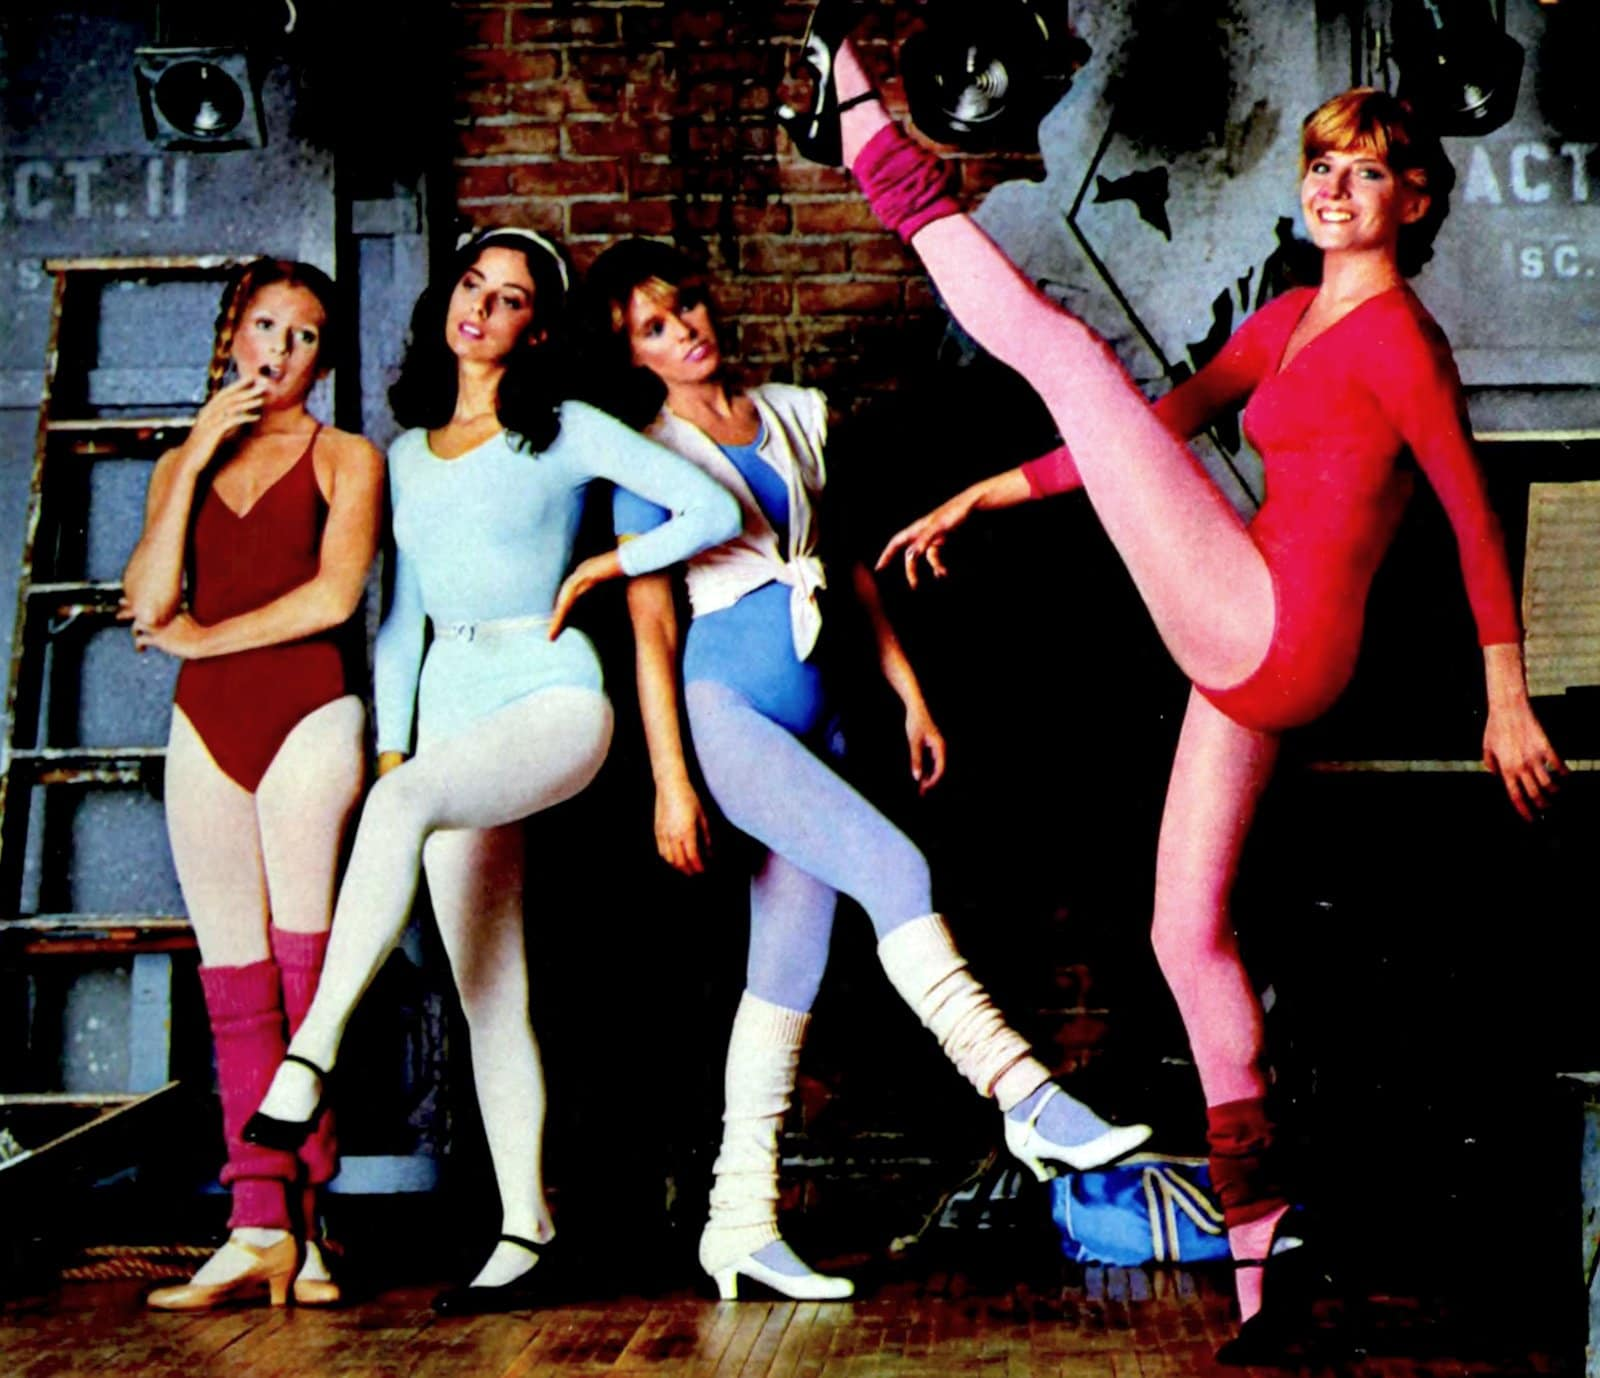 Retro 1980s dancers in tap shoes, leotards and leg warmers